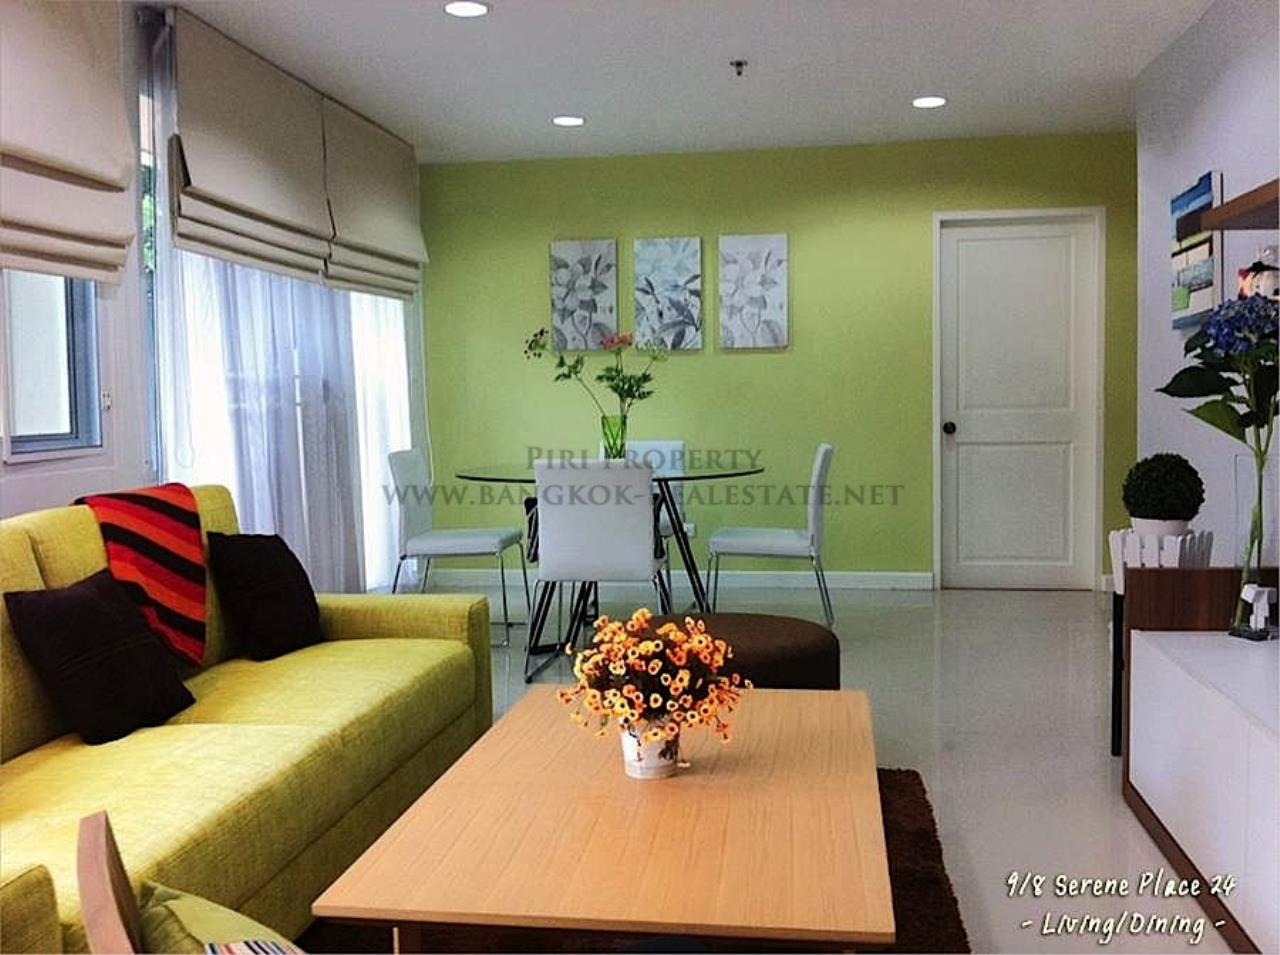 Piri Property Agency's Serene Place - Newly renovated 2 Bedroom Unit 2